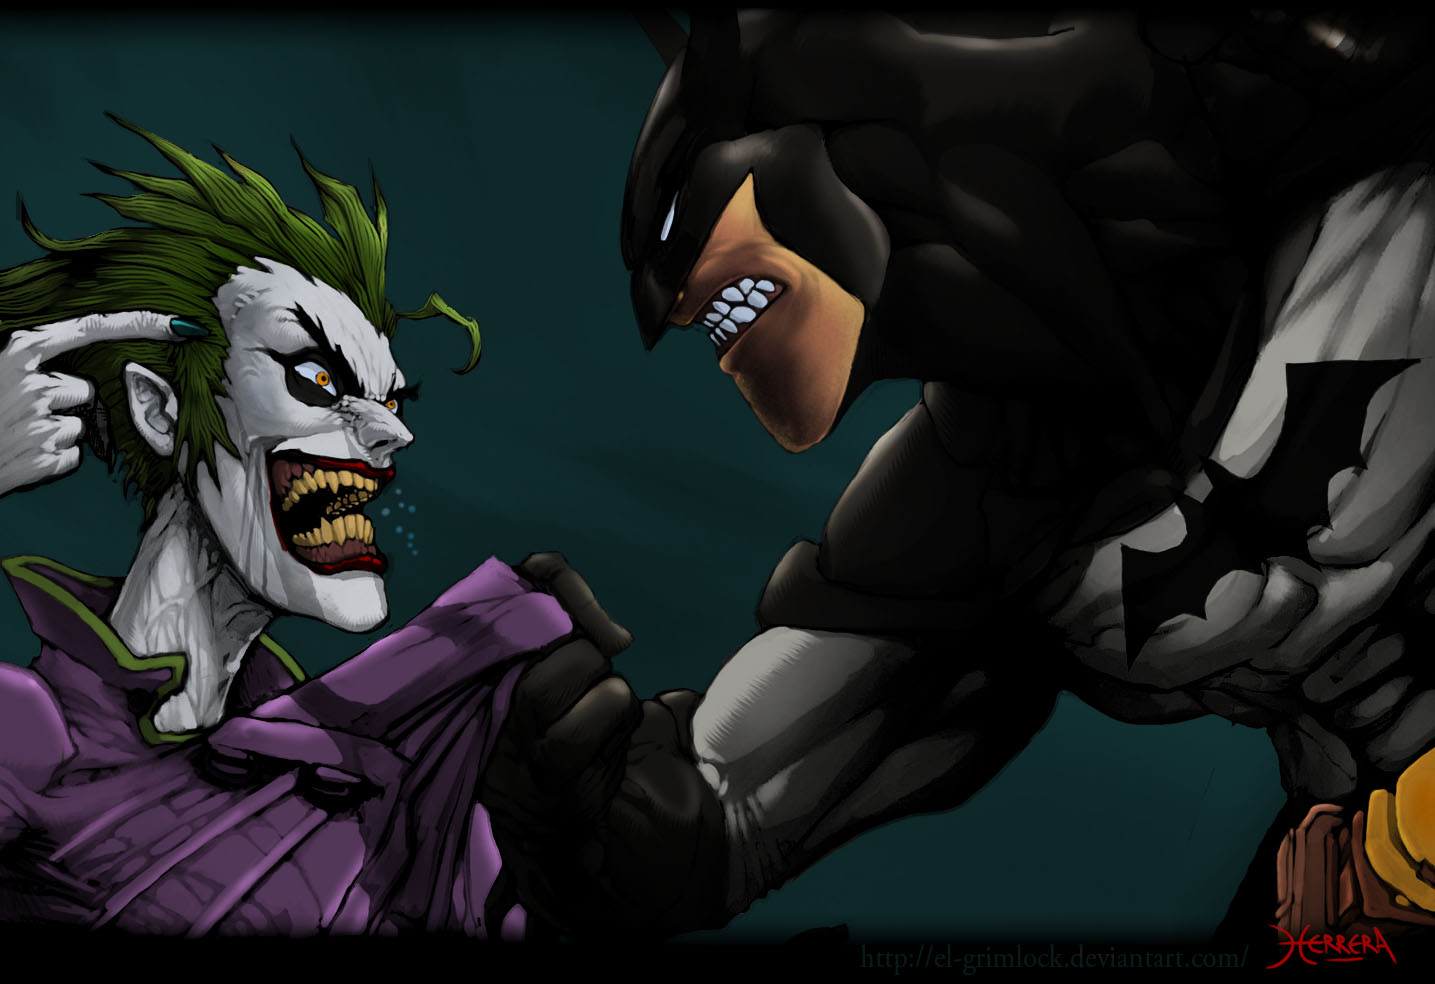 batman vs joker essay Free batman papers, essays, and research papers my account your search returned  the joker vs the batman - the joker gcpd had been after the joker for years.